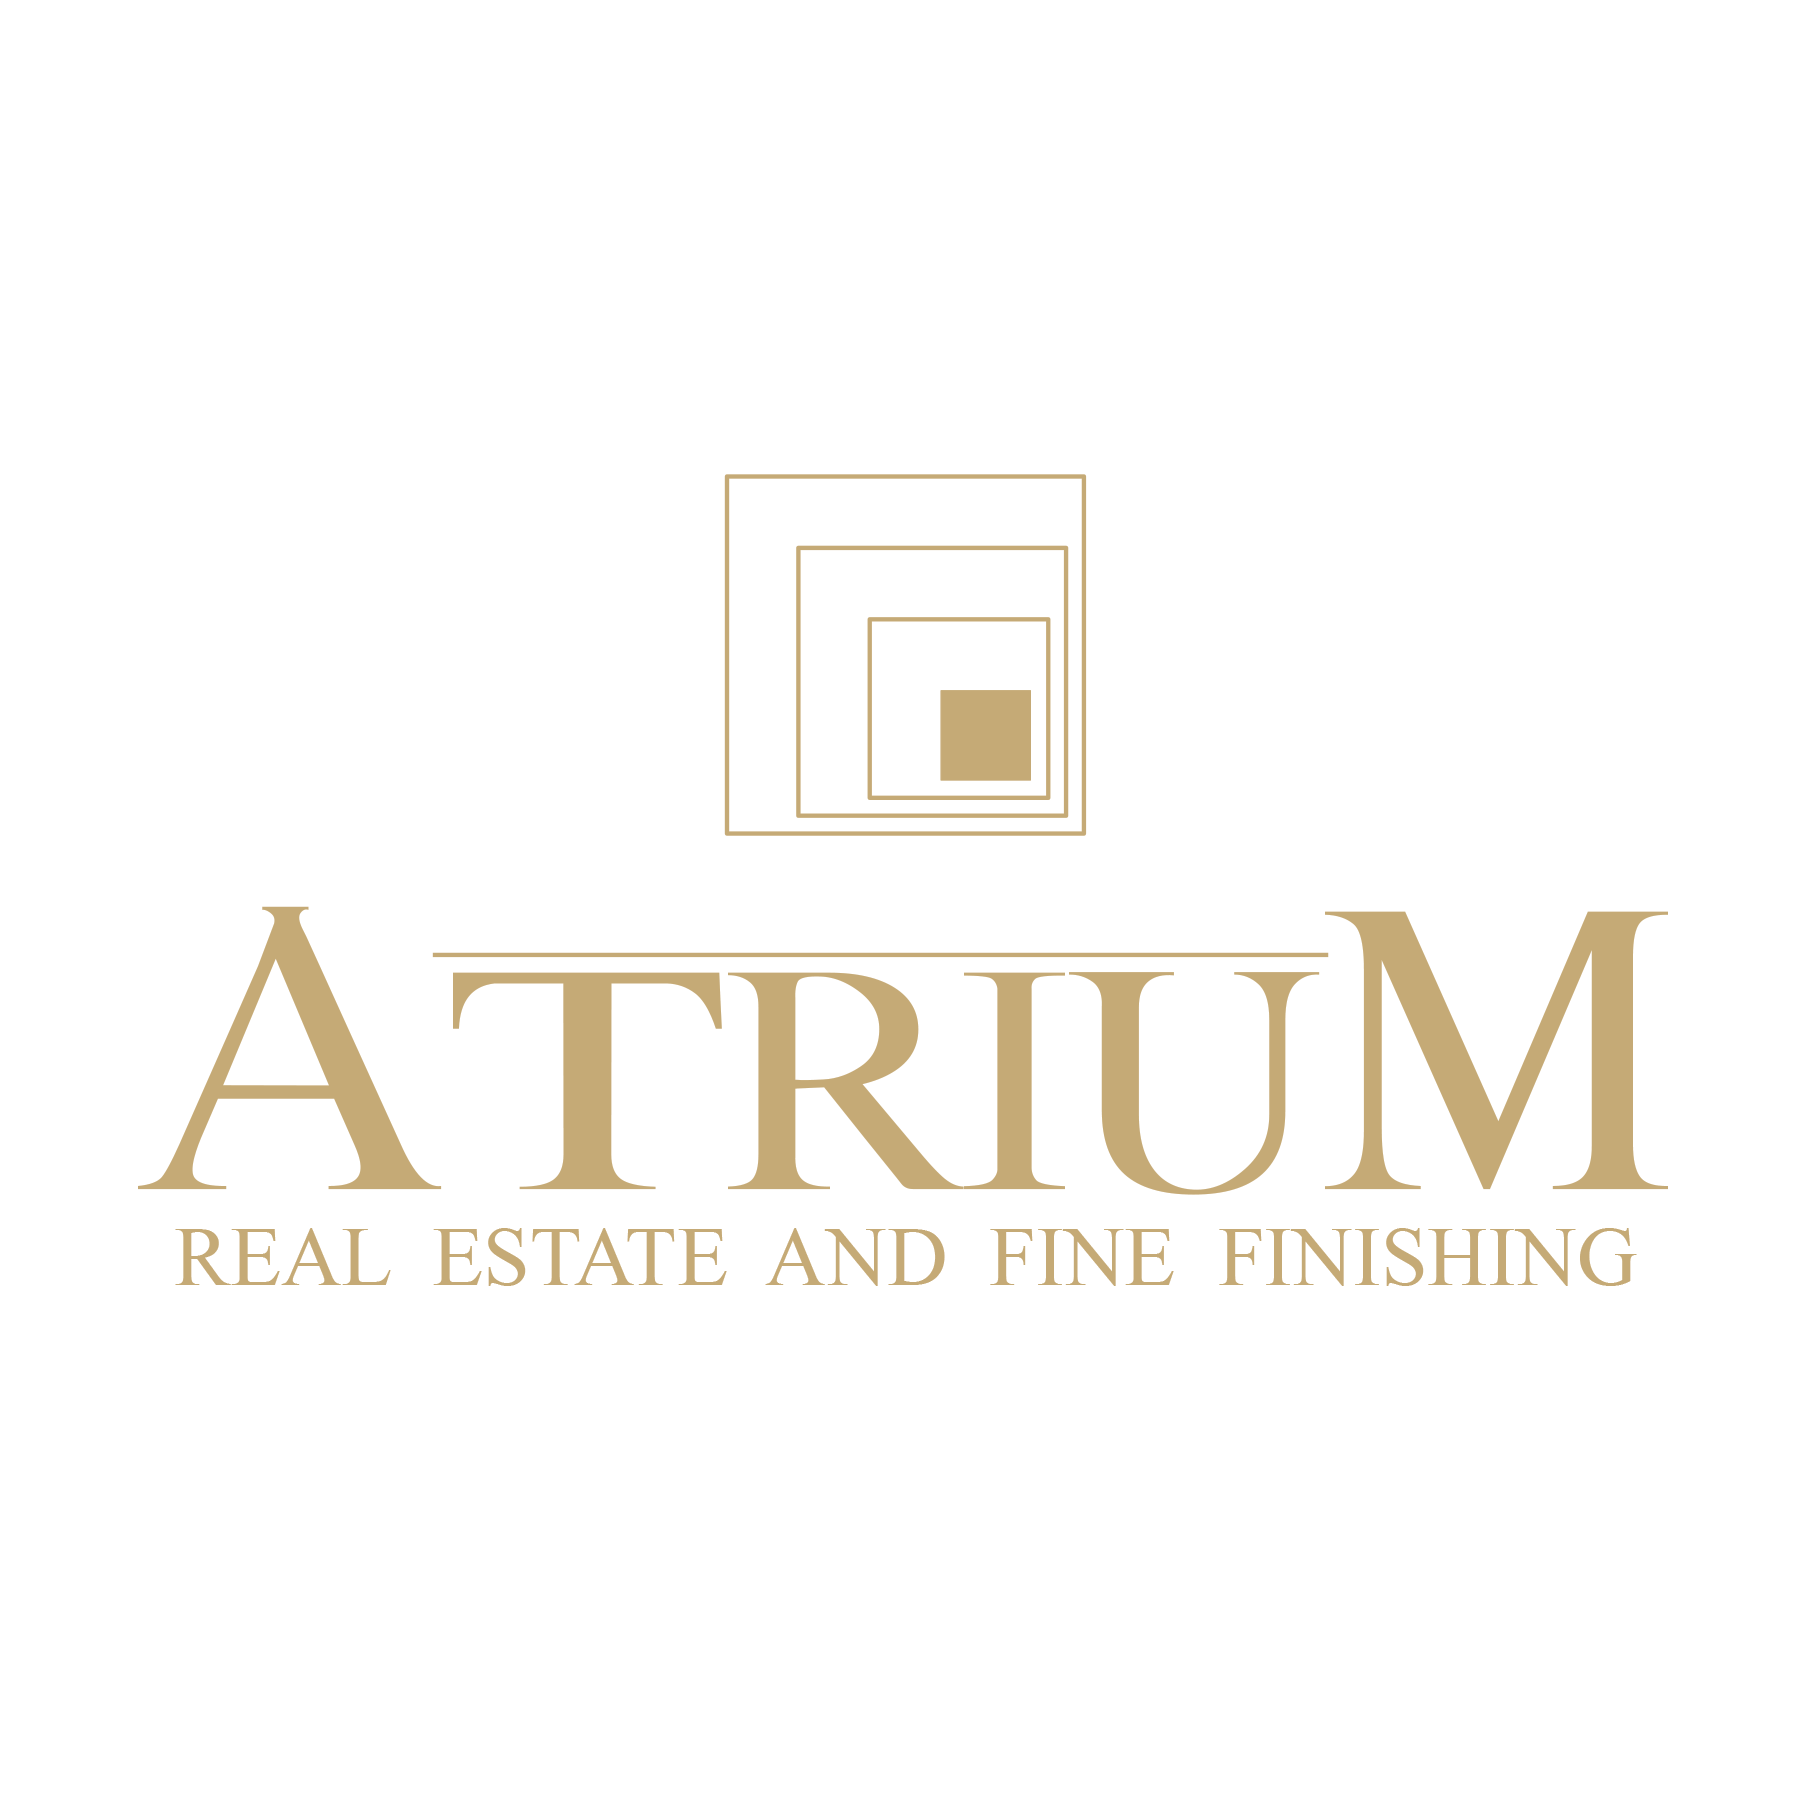 Atrium Group for real estate and fine finishing's logo